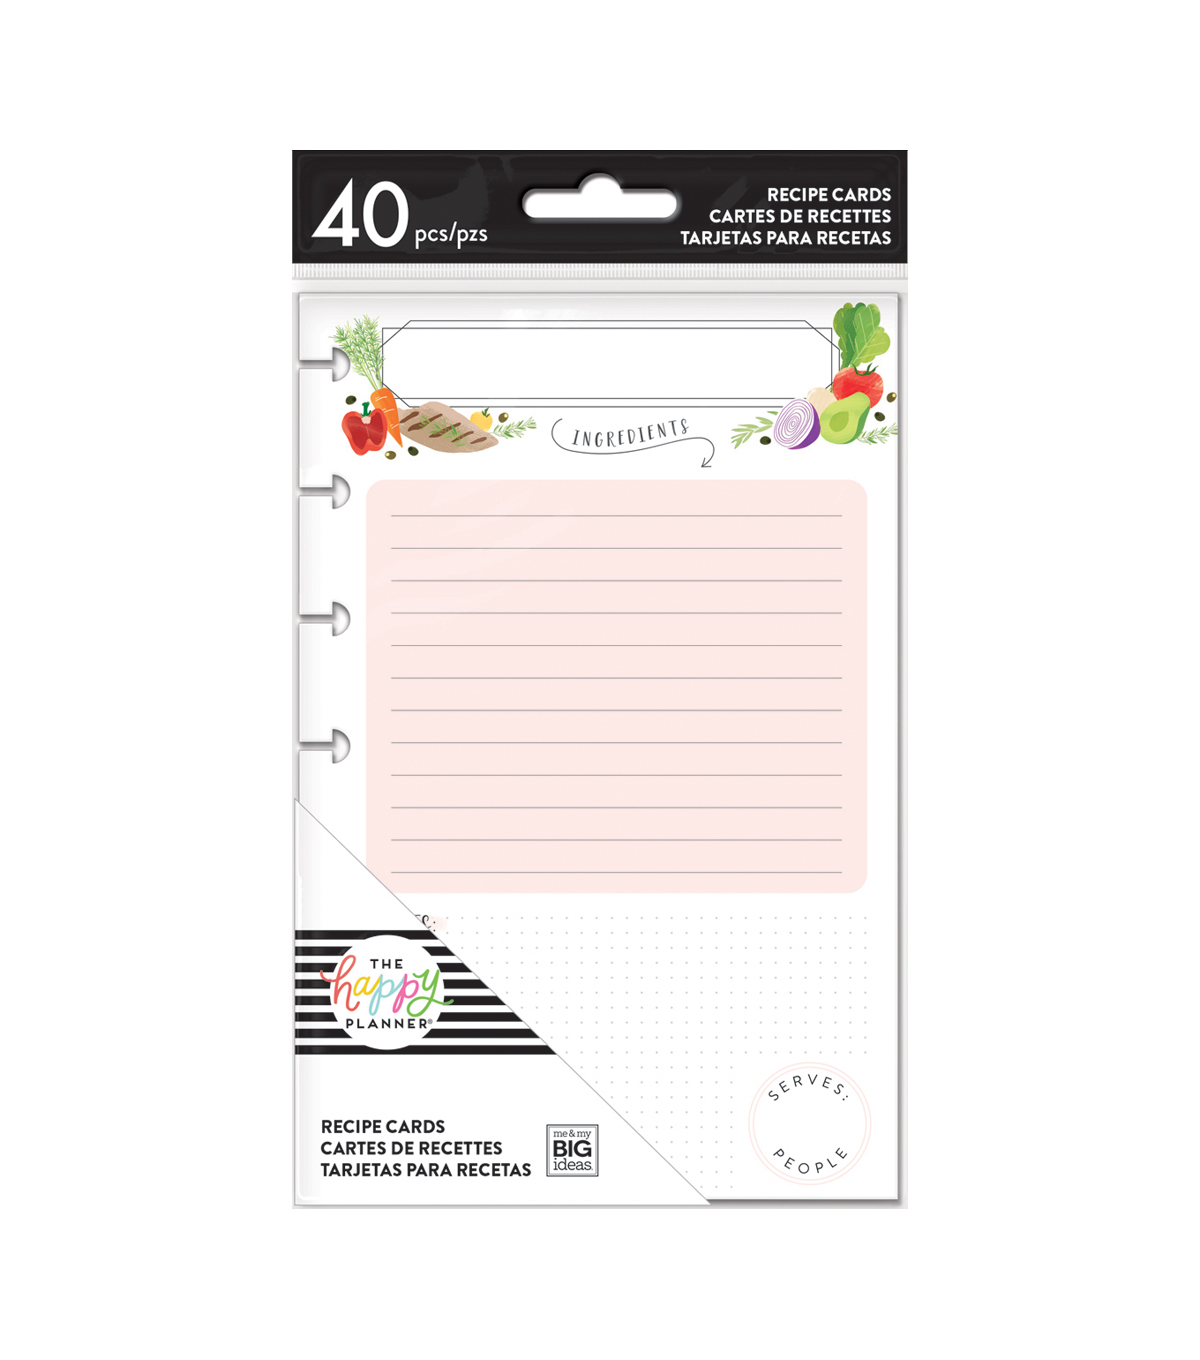 The Happy Planner 40 pk Recipe Cards